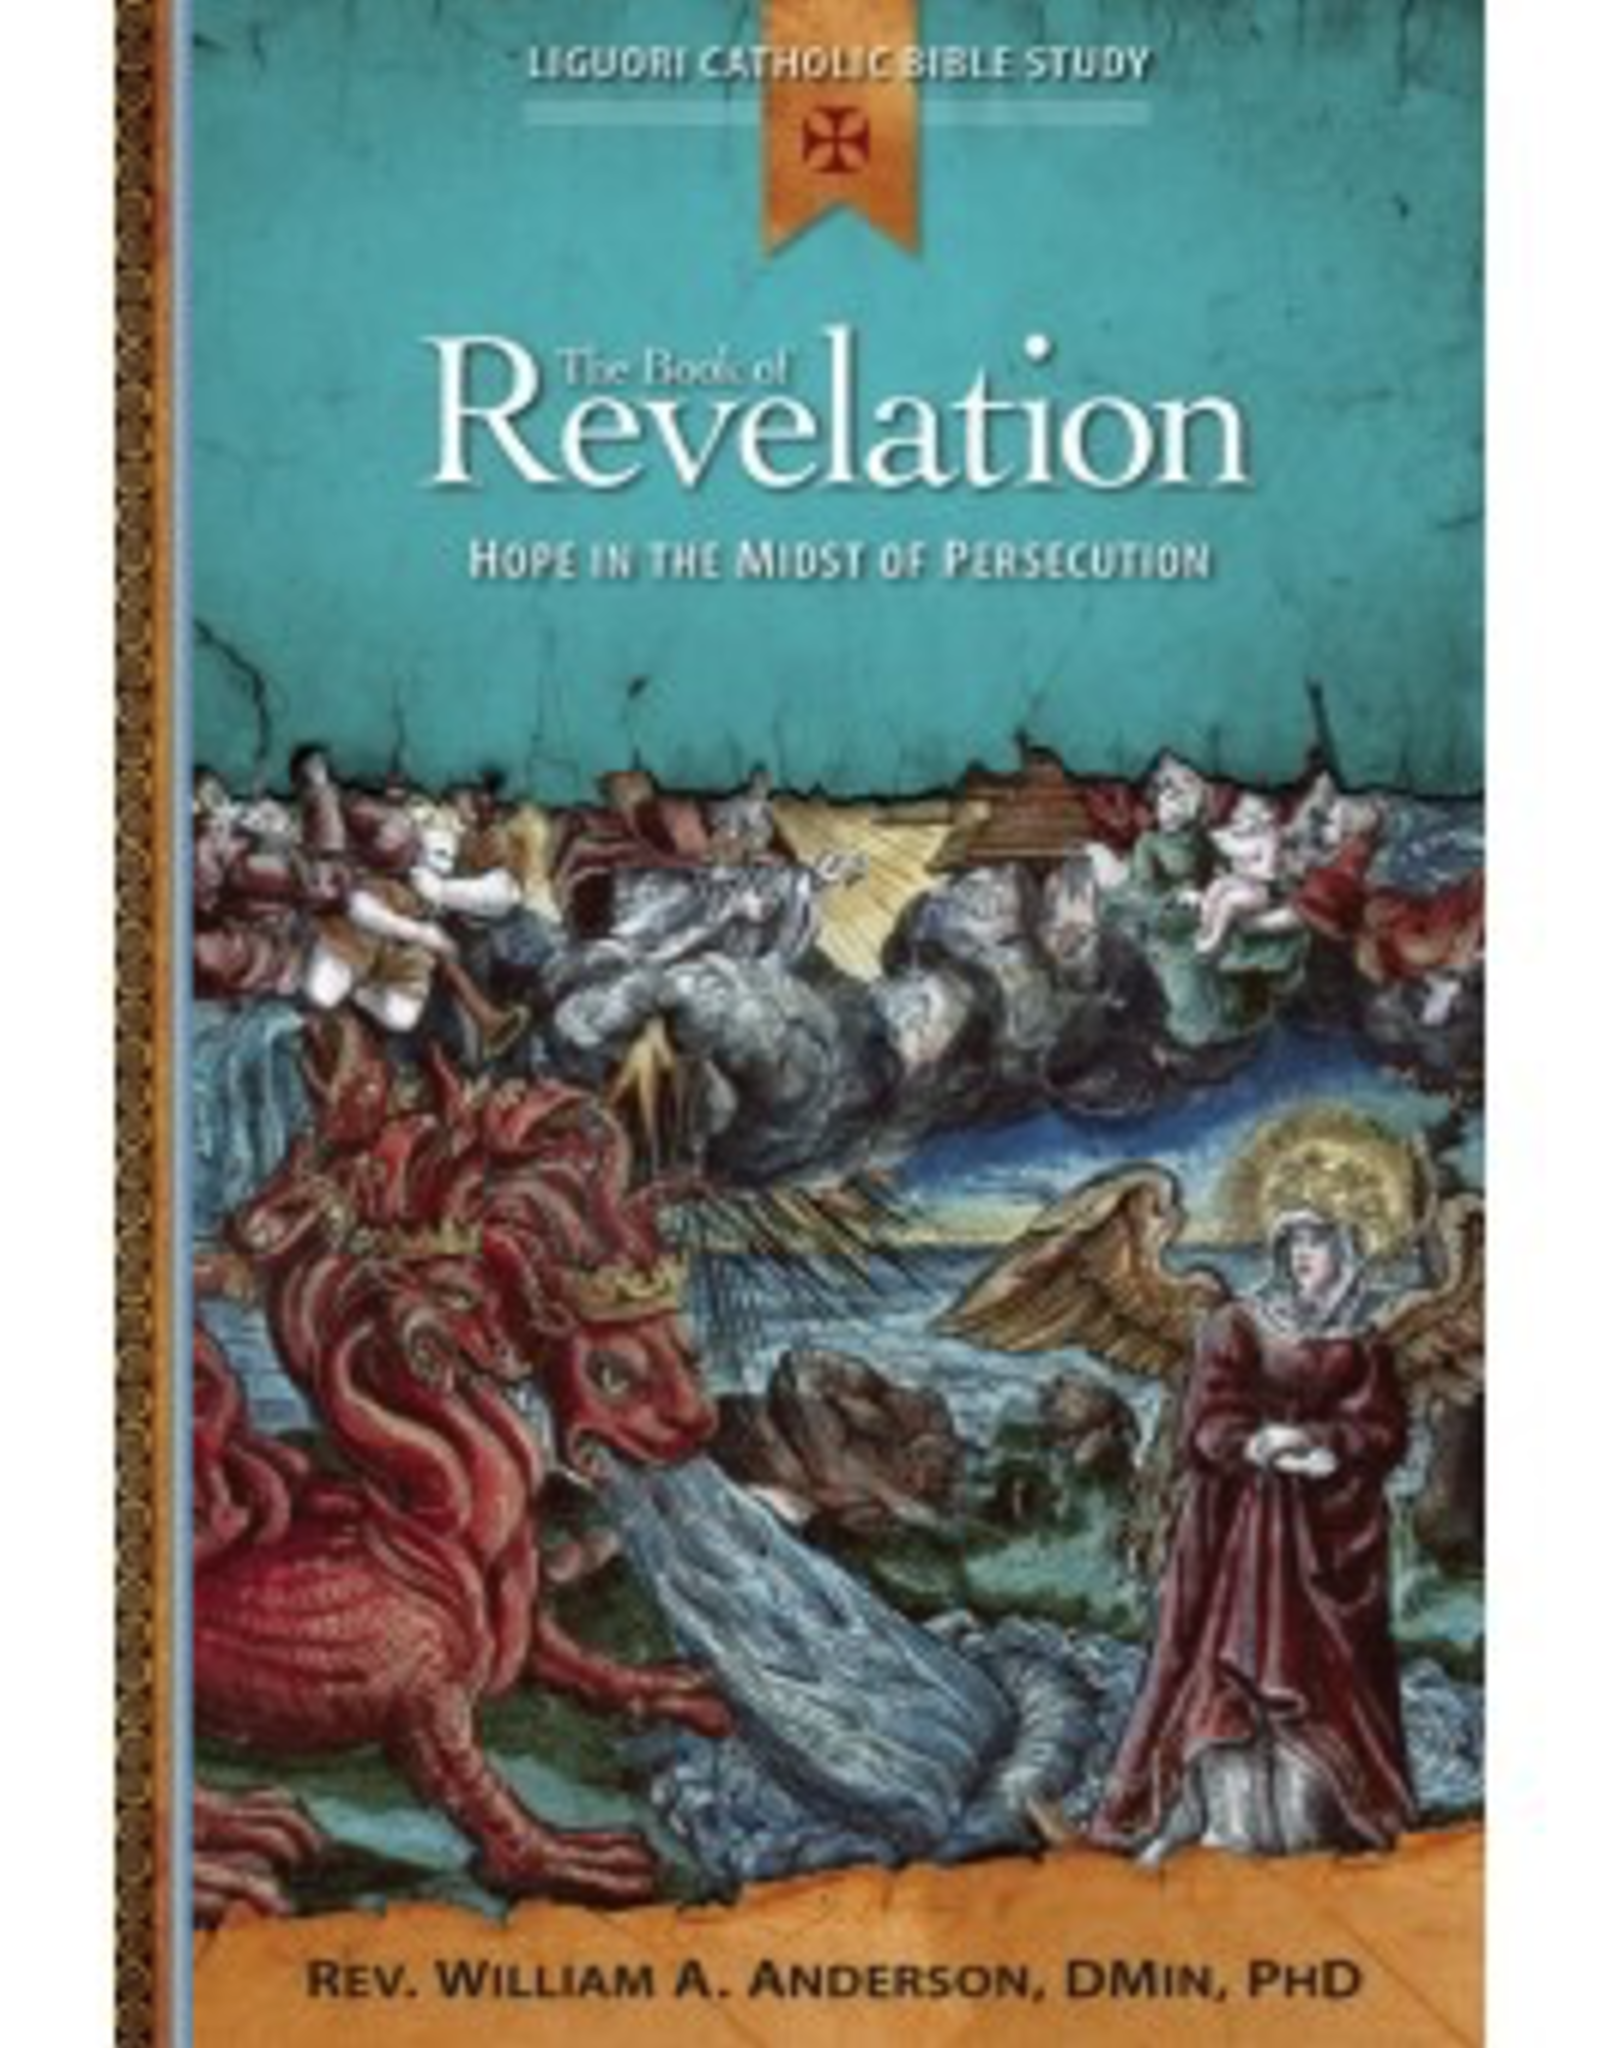 Liguori Book of Revelation: Hope in the Midst of Persecution, by William Anderson (paperback)